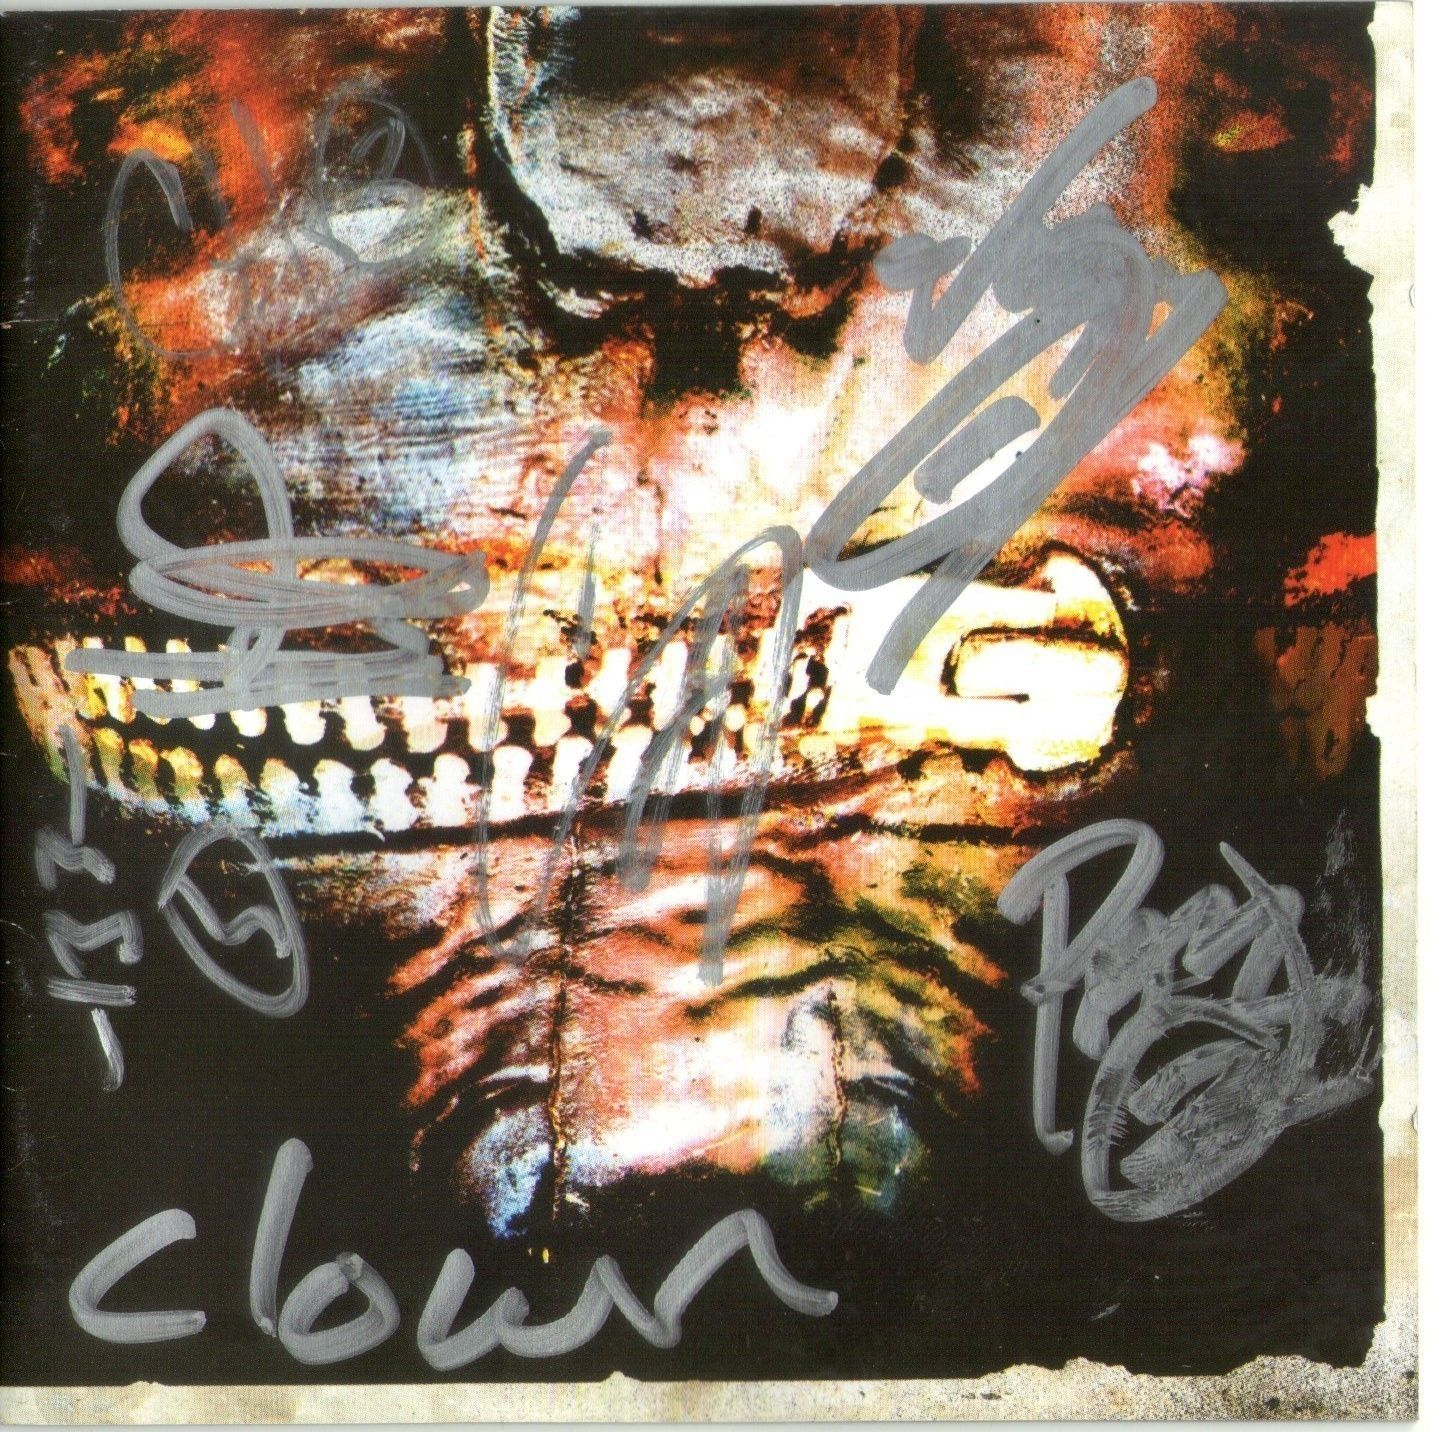 CD - Slipknot The Subliminal Verses - Autografado